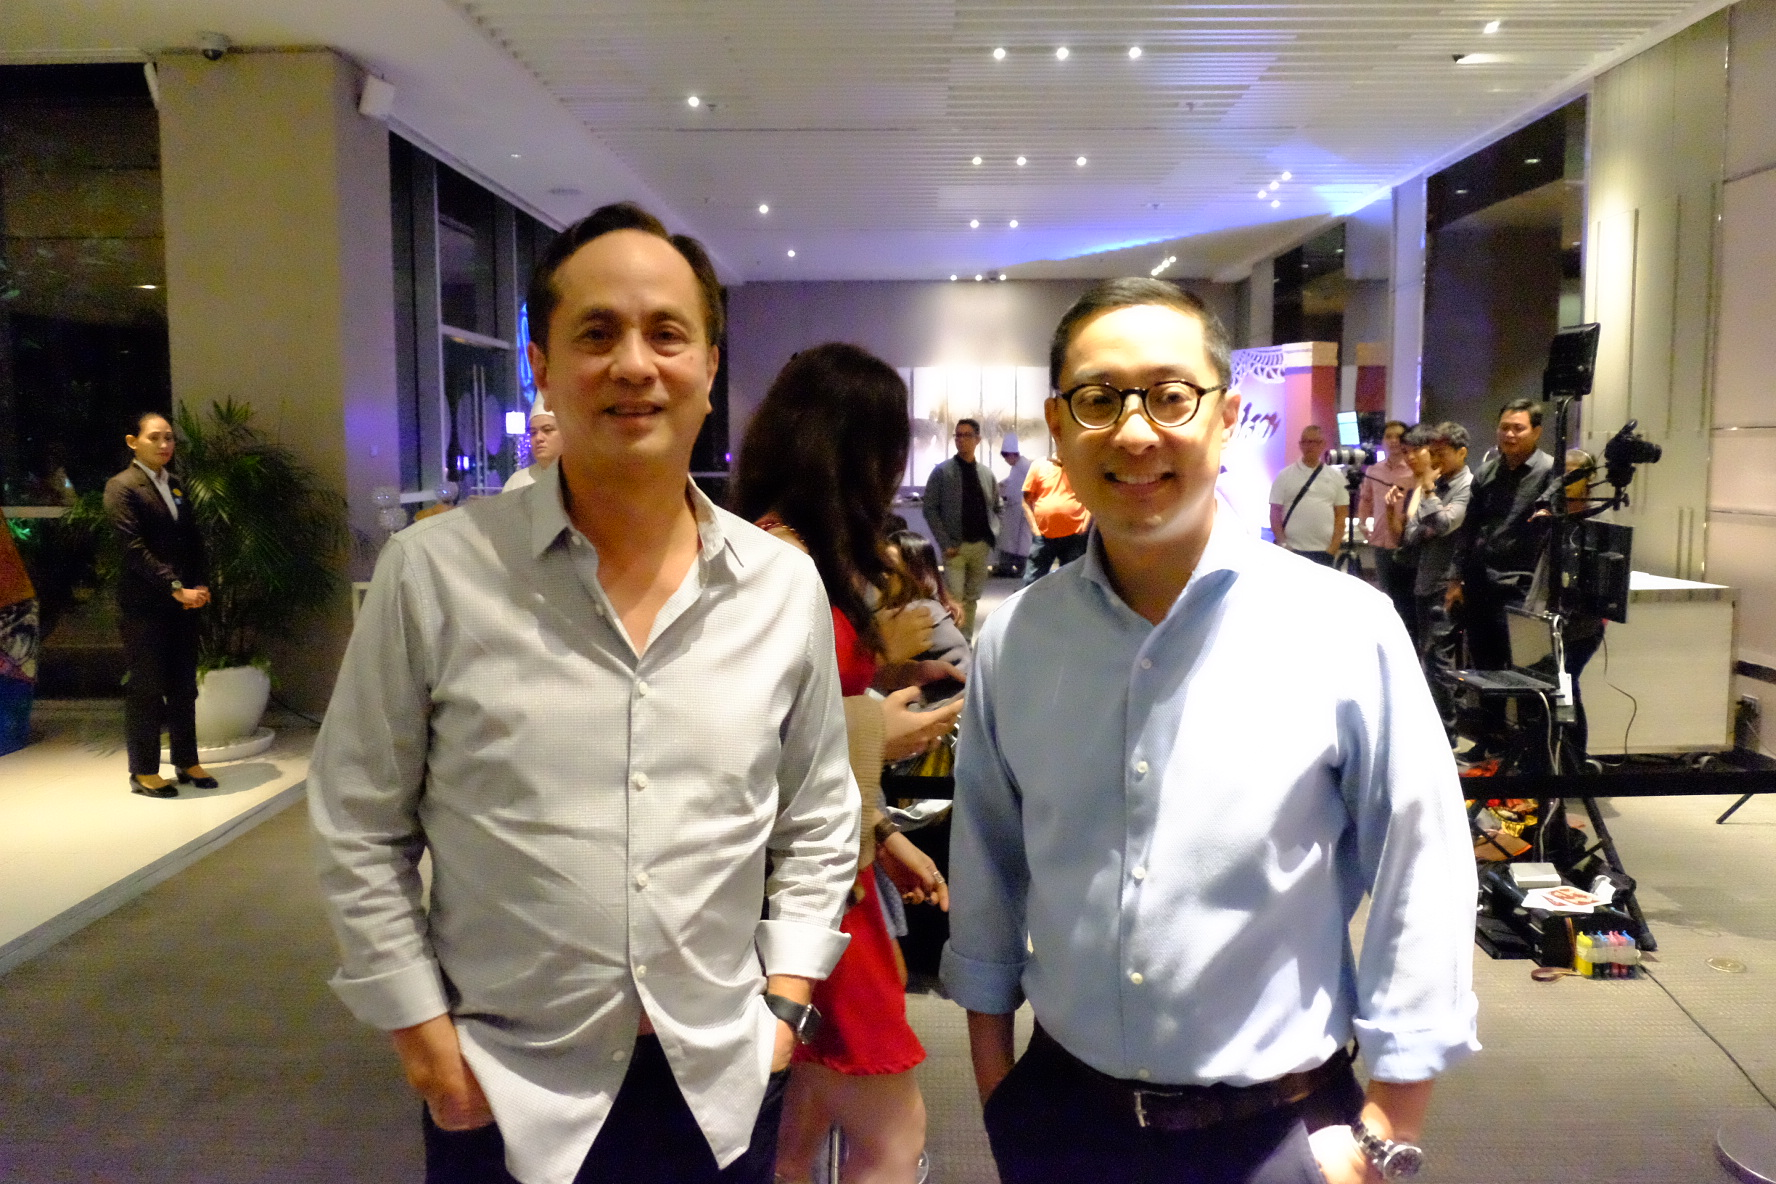 ABS-CBN chairman Eugenio Lopez III and president Carlo L. Katigbak